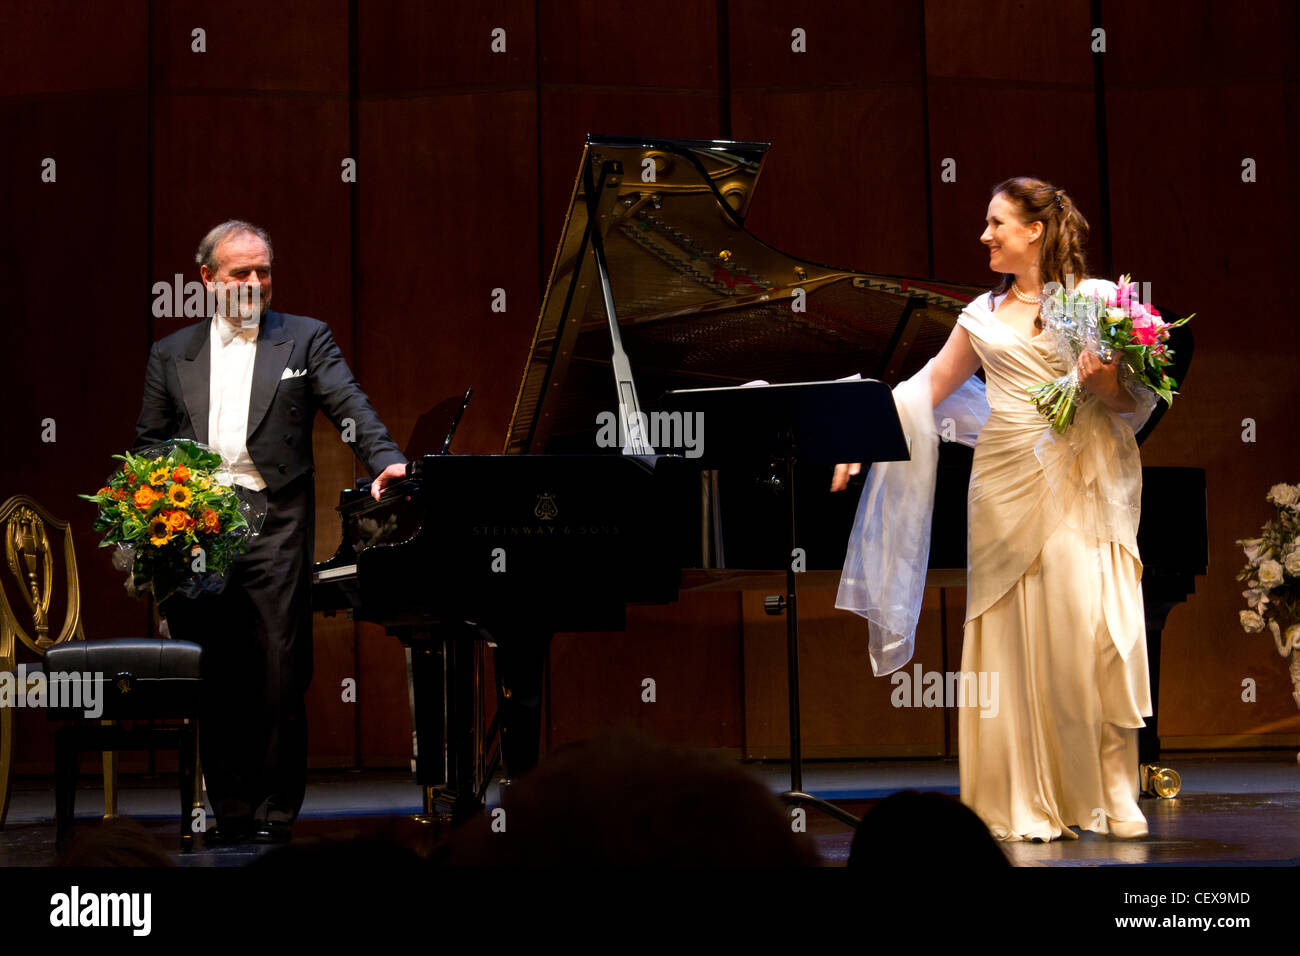 curtain call of opera singer Diana Damrau and pianist Helmut Deutsch, Deutsche Oper, Berling, Germany - Stock Image